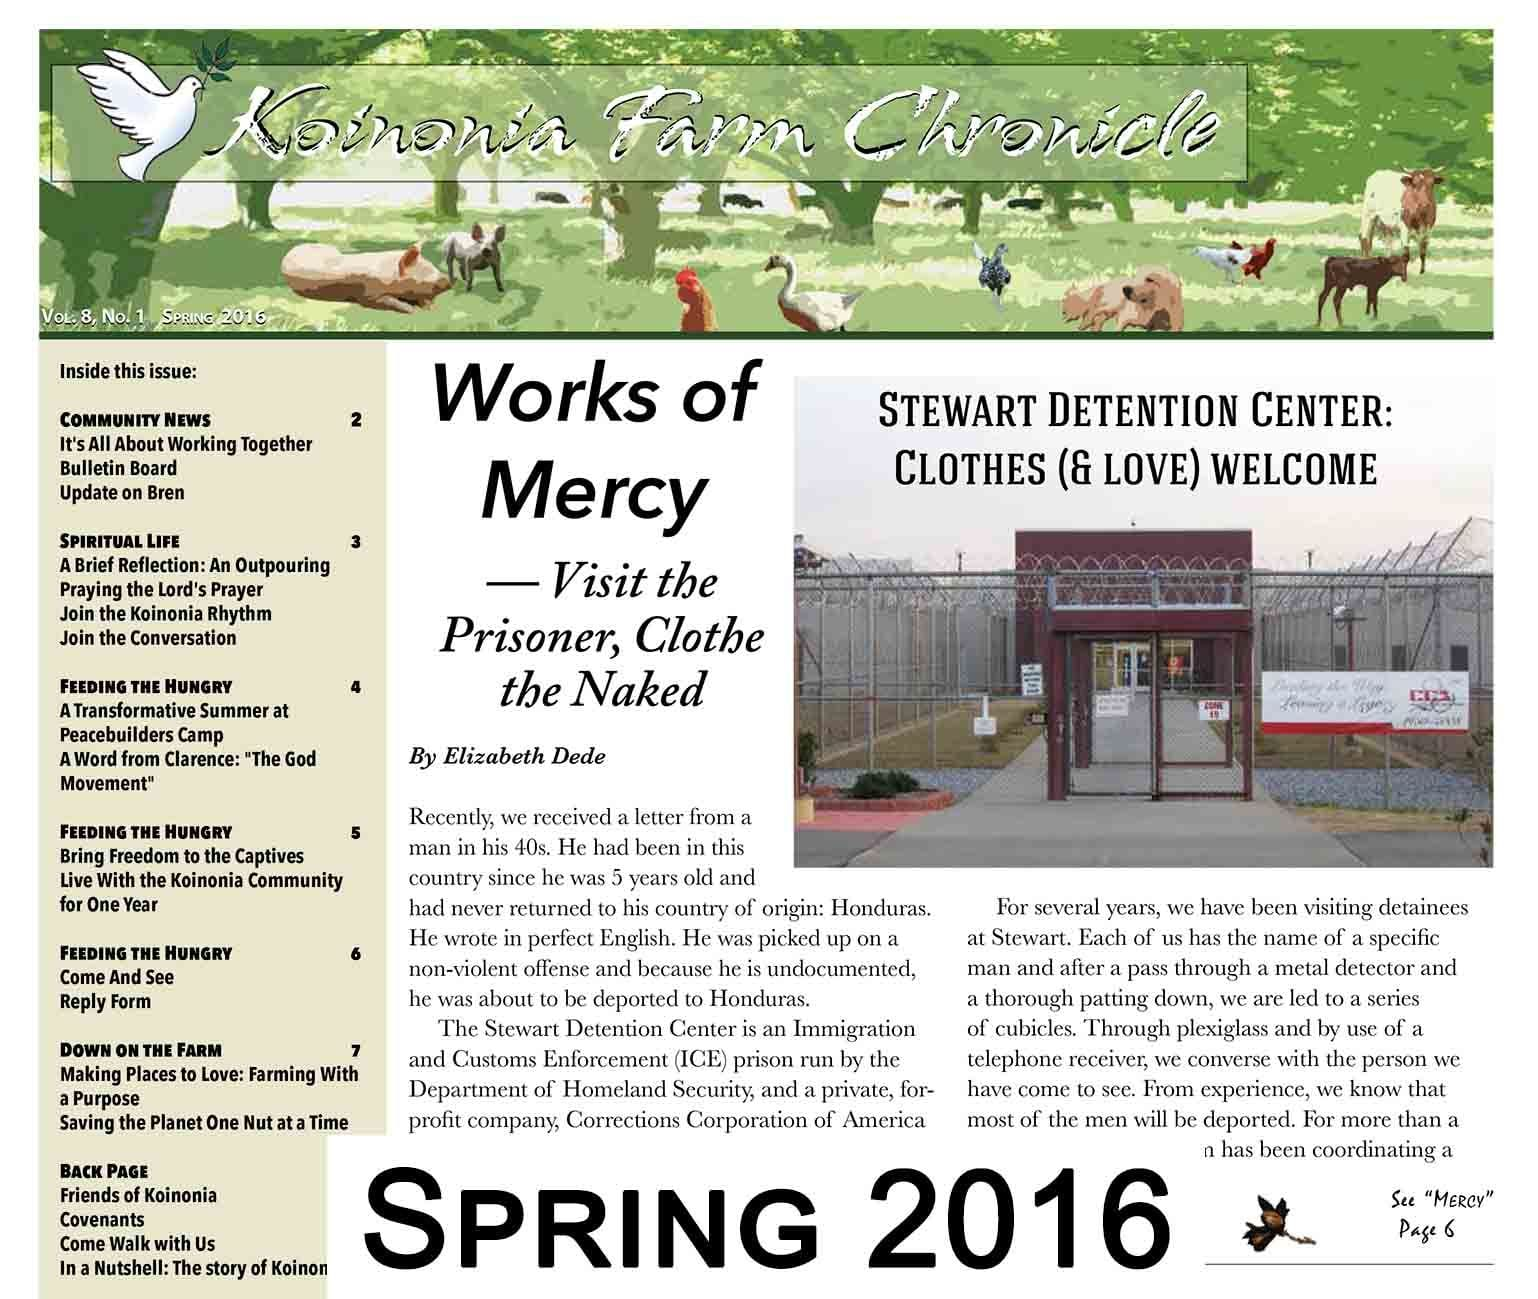 Koinonia Farm Chronicle Spring 2016